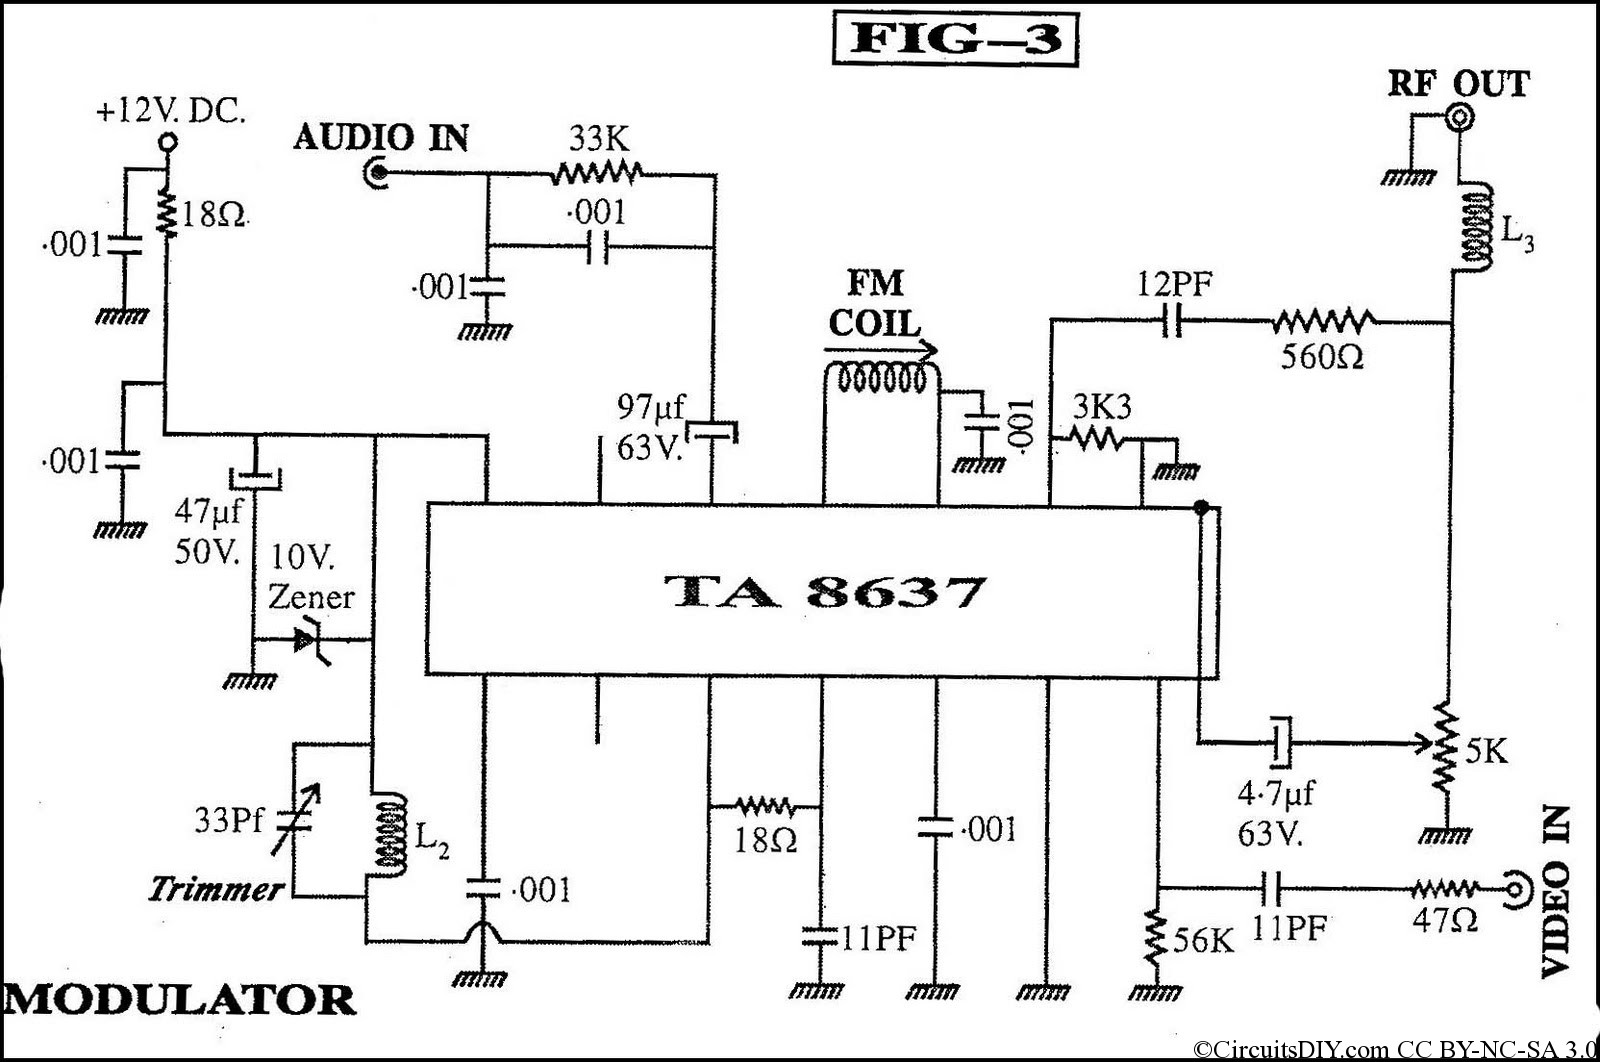 Receiver Circuit Diagram | Homemade Dth Receiver Diagram Circuits Diy